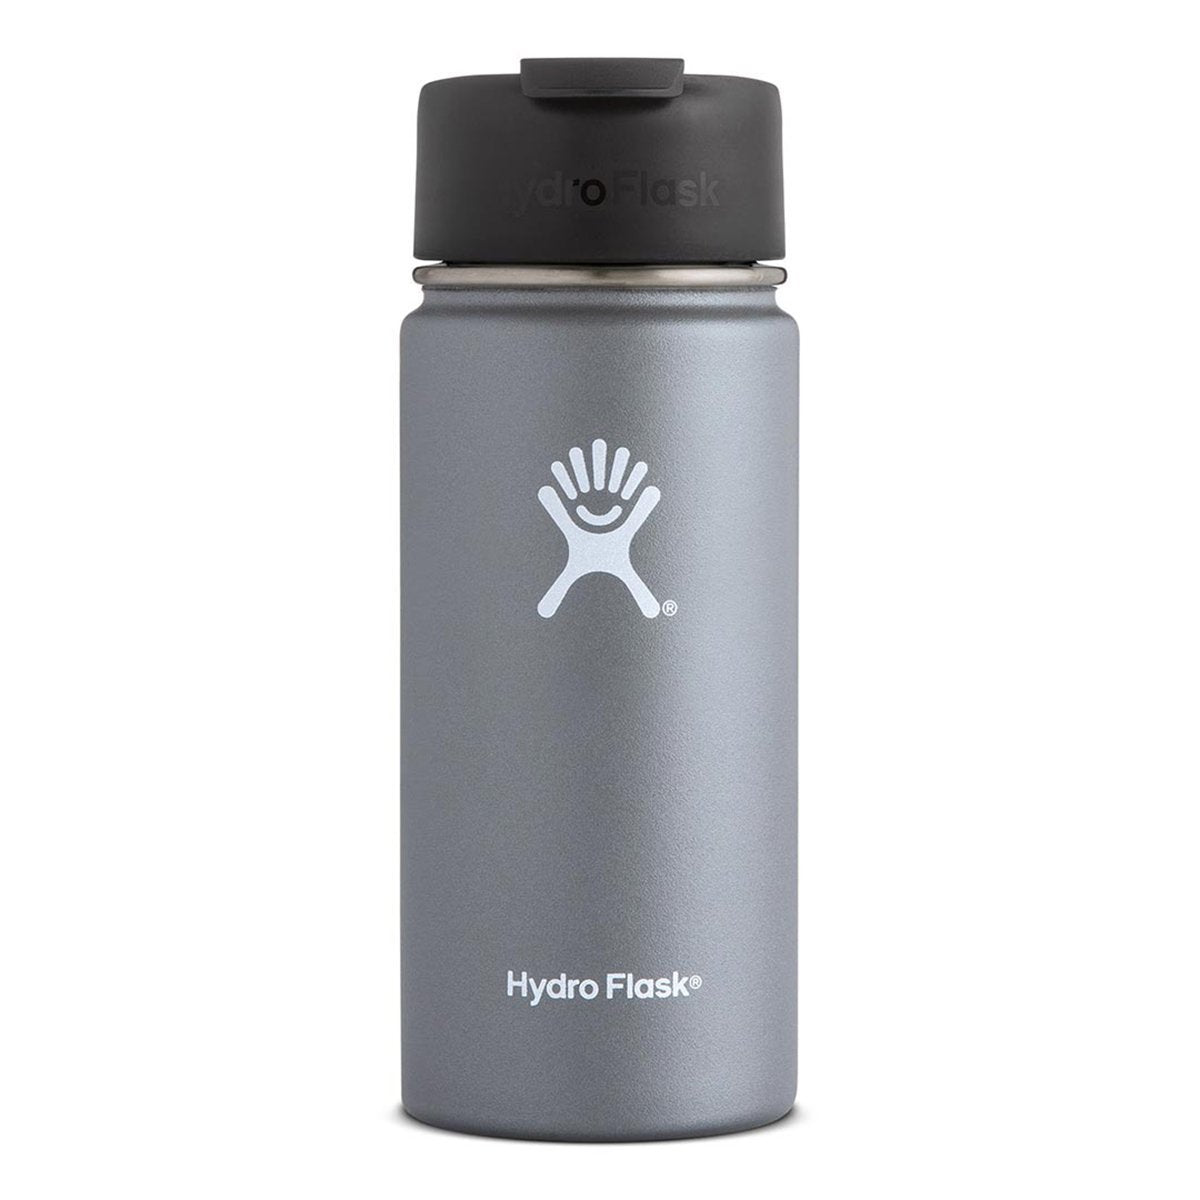 Hydro Flask - Coffee Flask 16 oz - Tea Flask, Vacuum Flask - Graphite